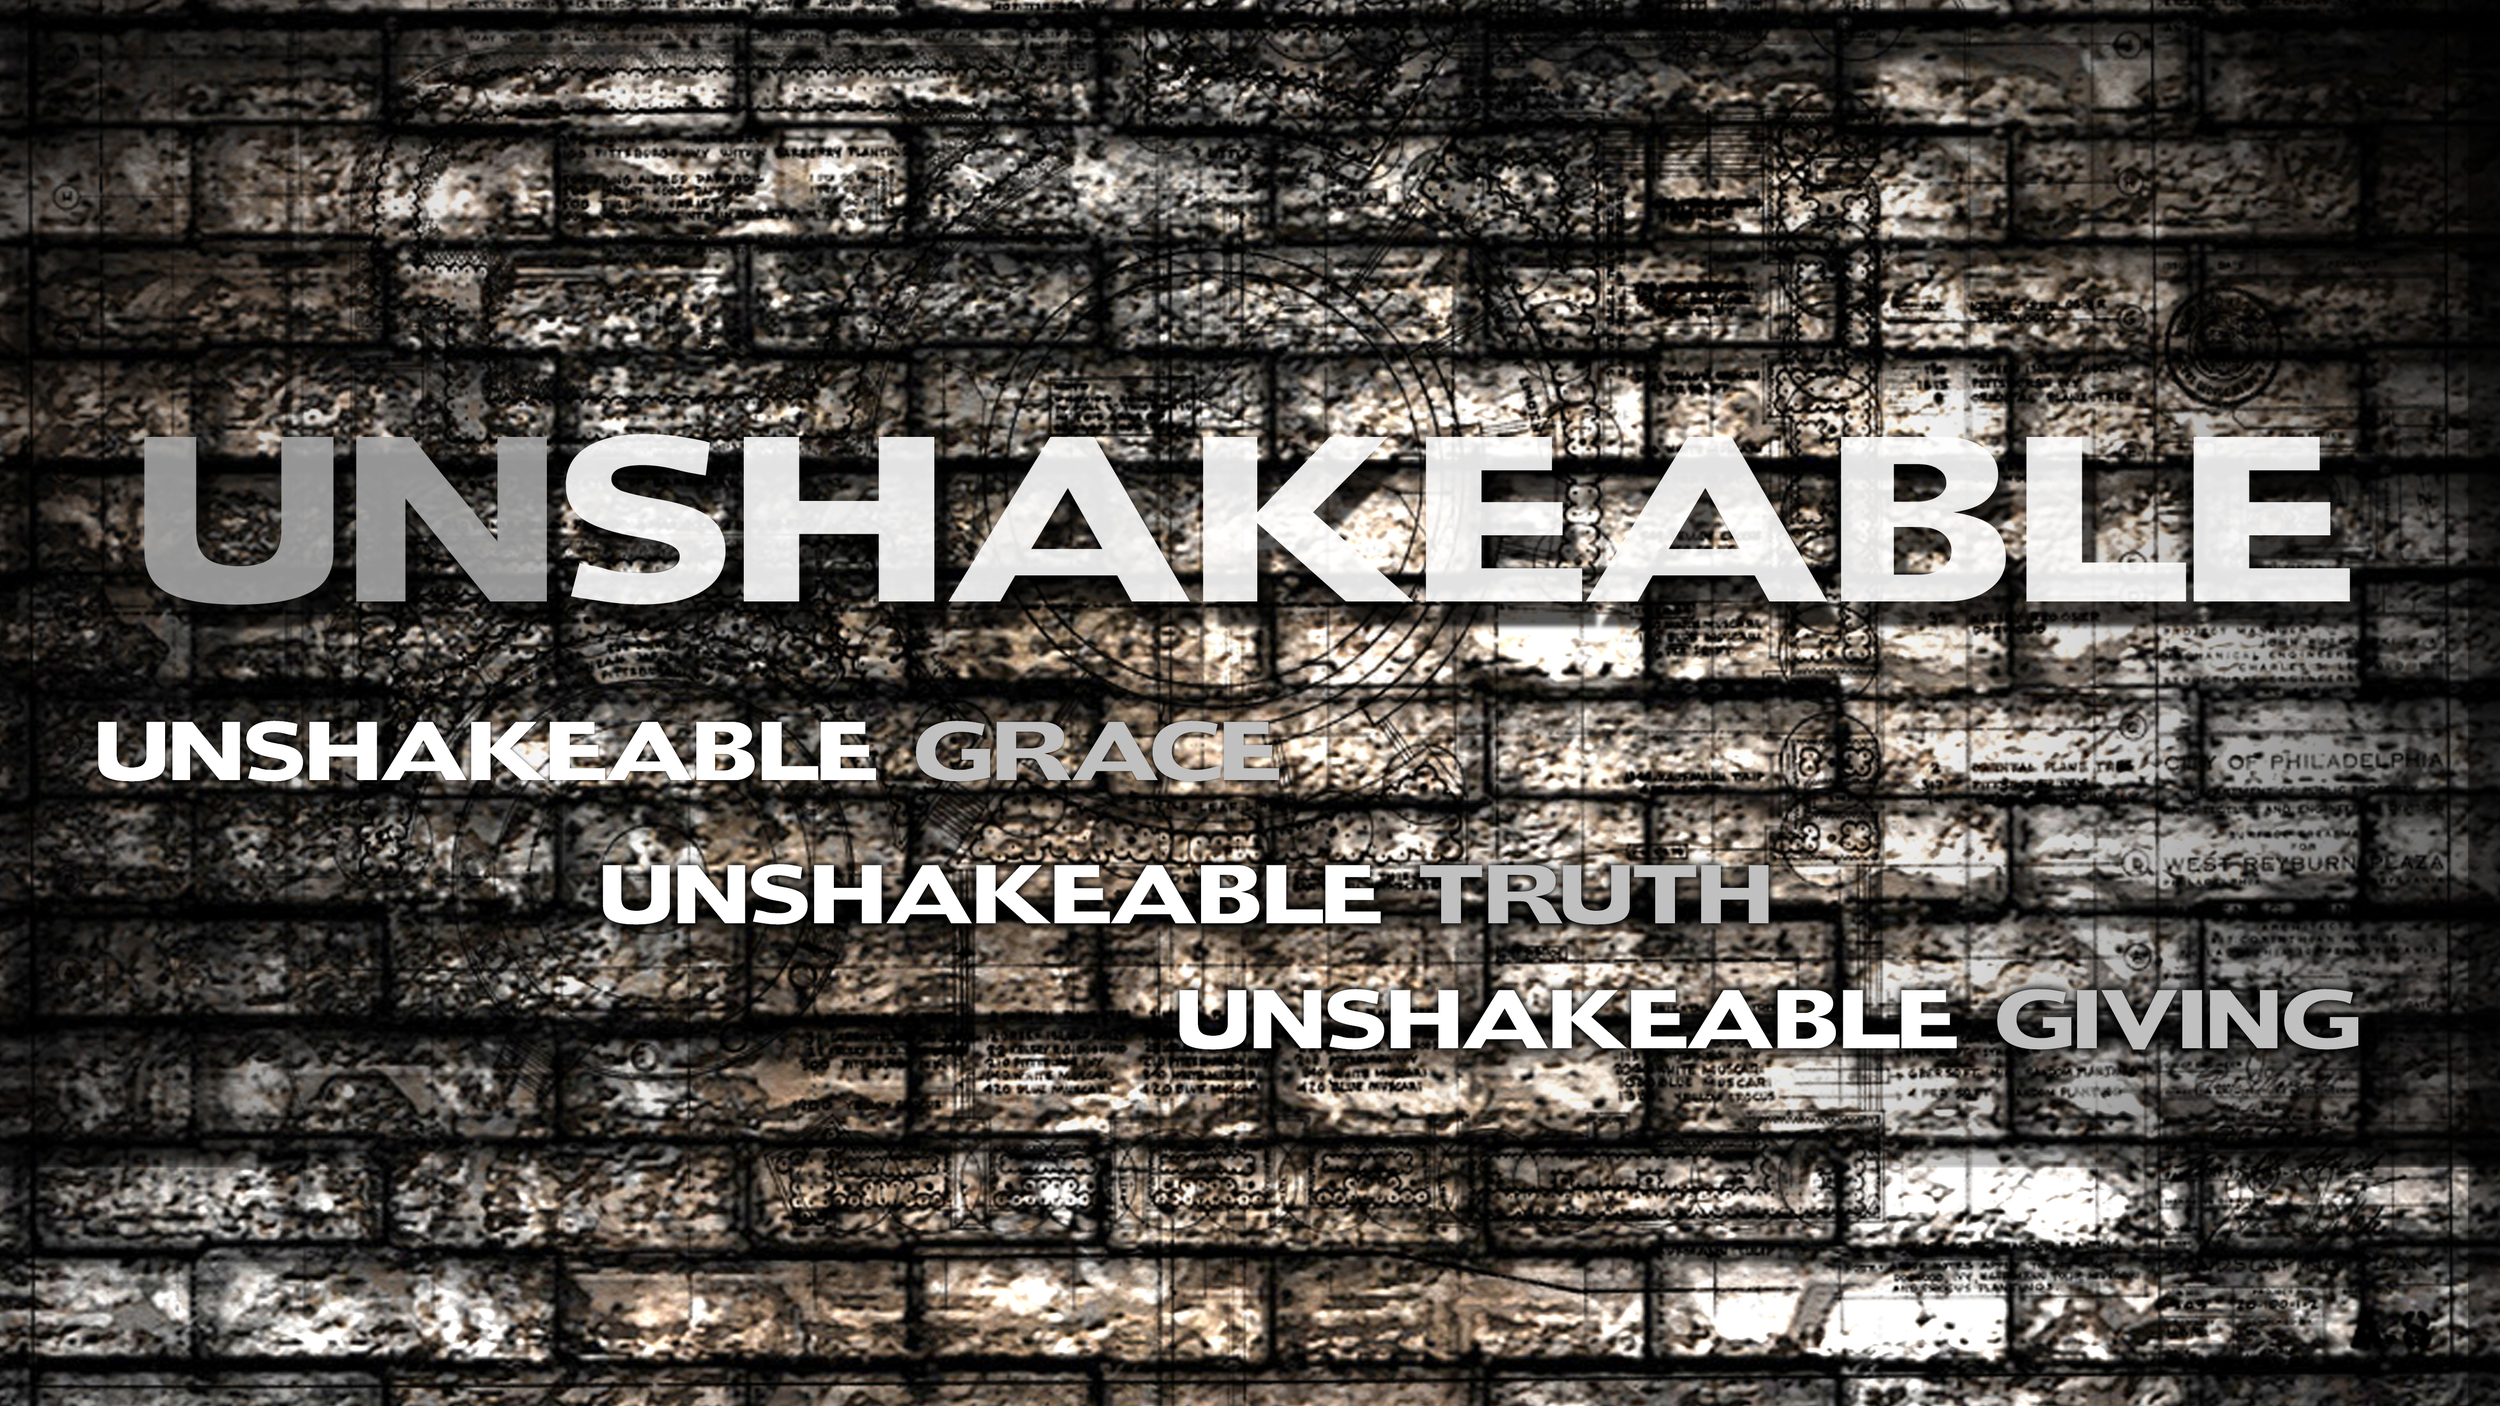 JG - Series Graphic - Unshakable - 16x9.jpg